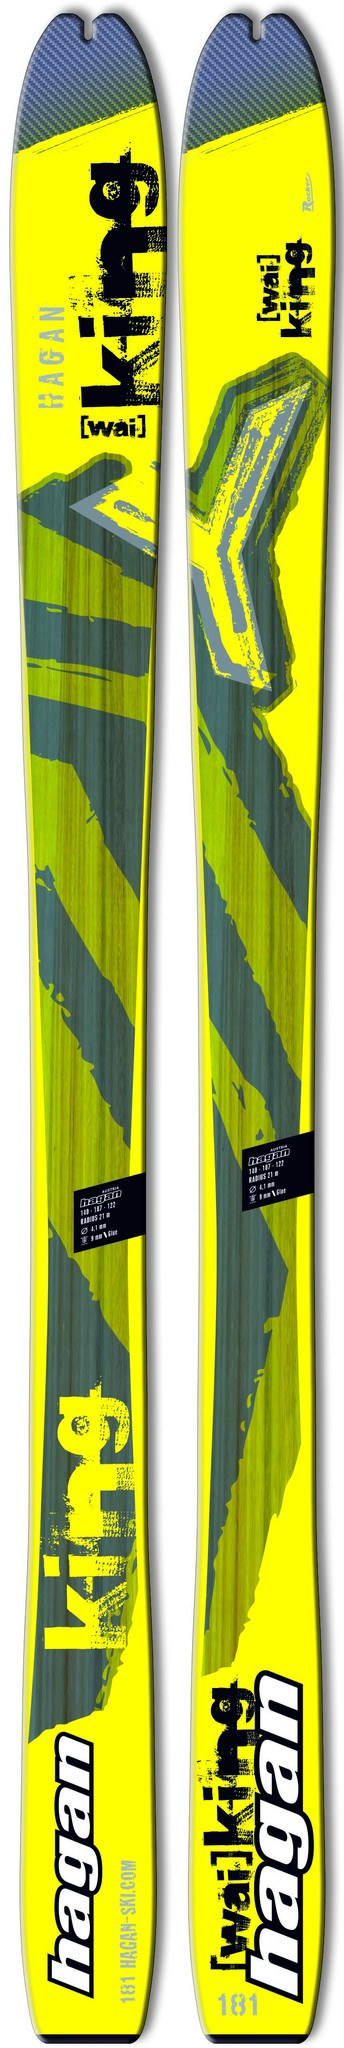 Y-King, Skis - Hagan Ski Mountaineering